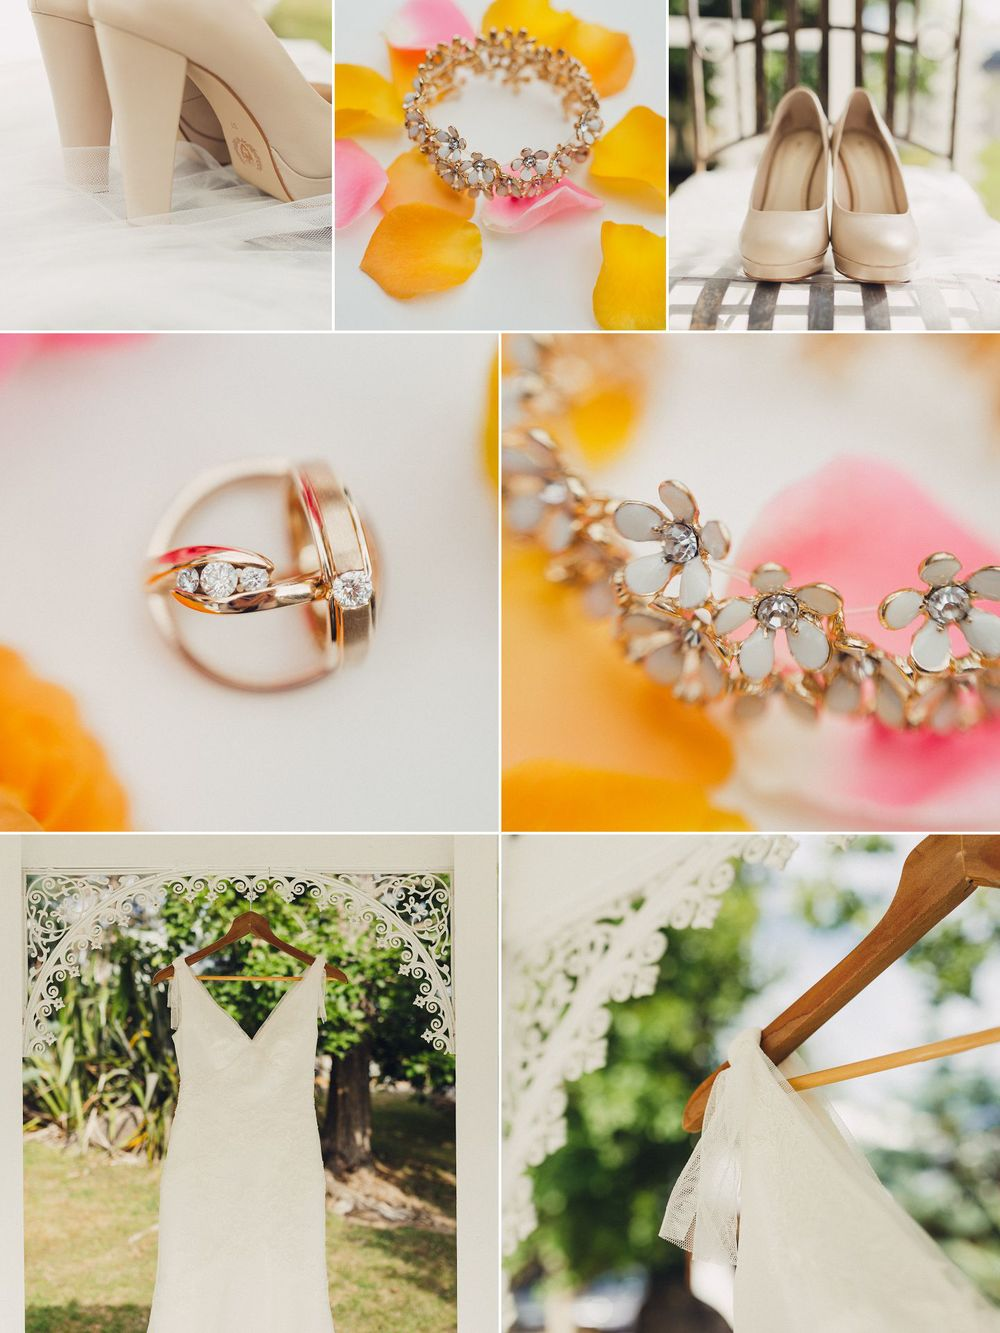 Whimsical Wedding Details and Vera Wang Dress